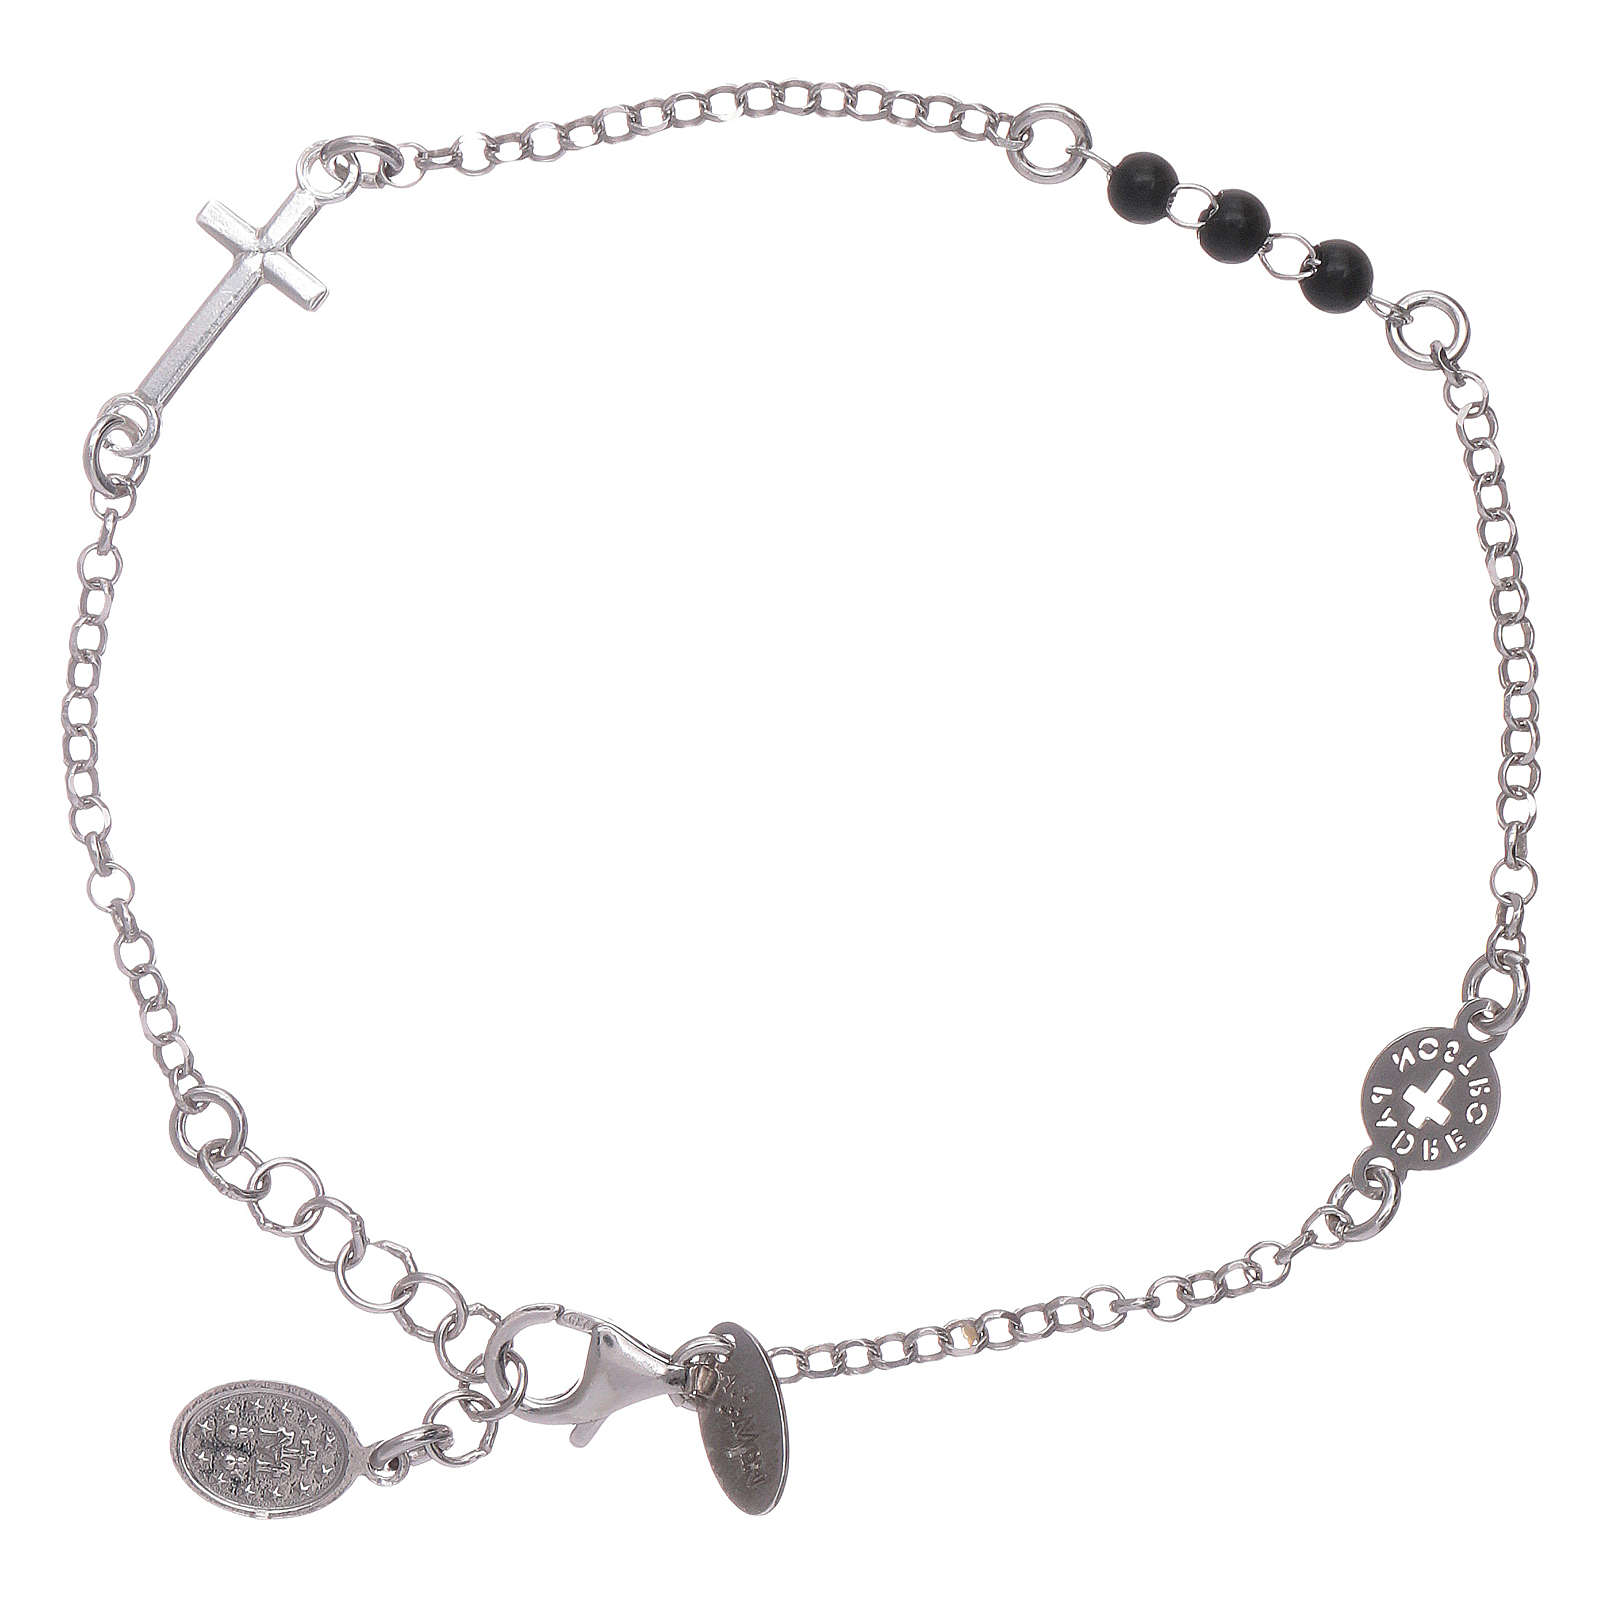 AMEN 925 sterling silver bracelet Our Father with cross 4